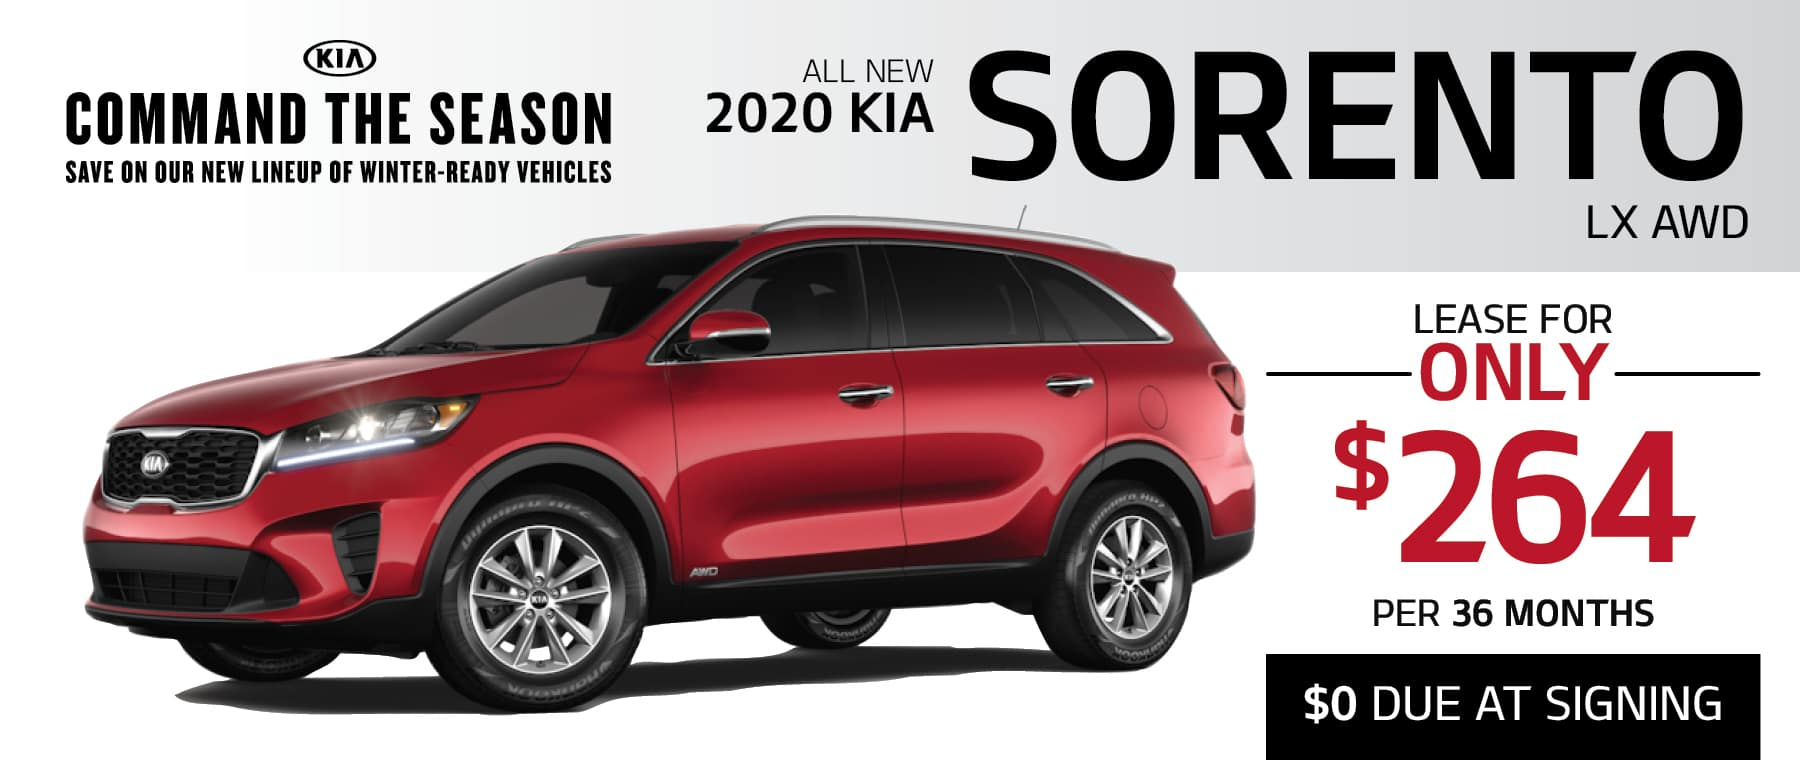 2020 Kia Sorento Lease for just $264 per month at Smail Kia